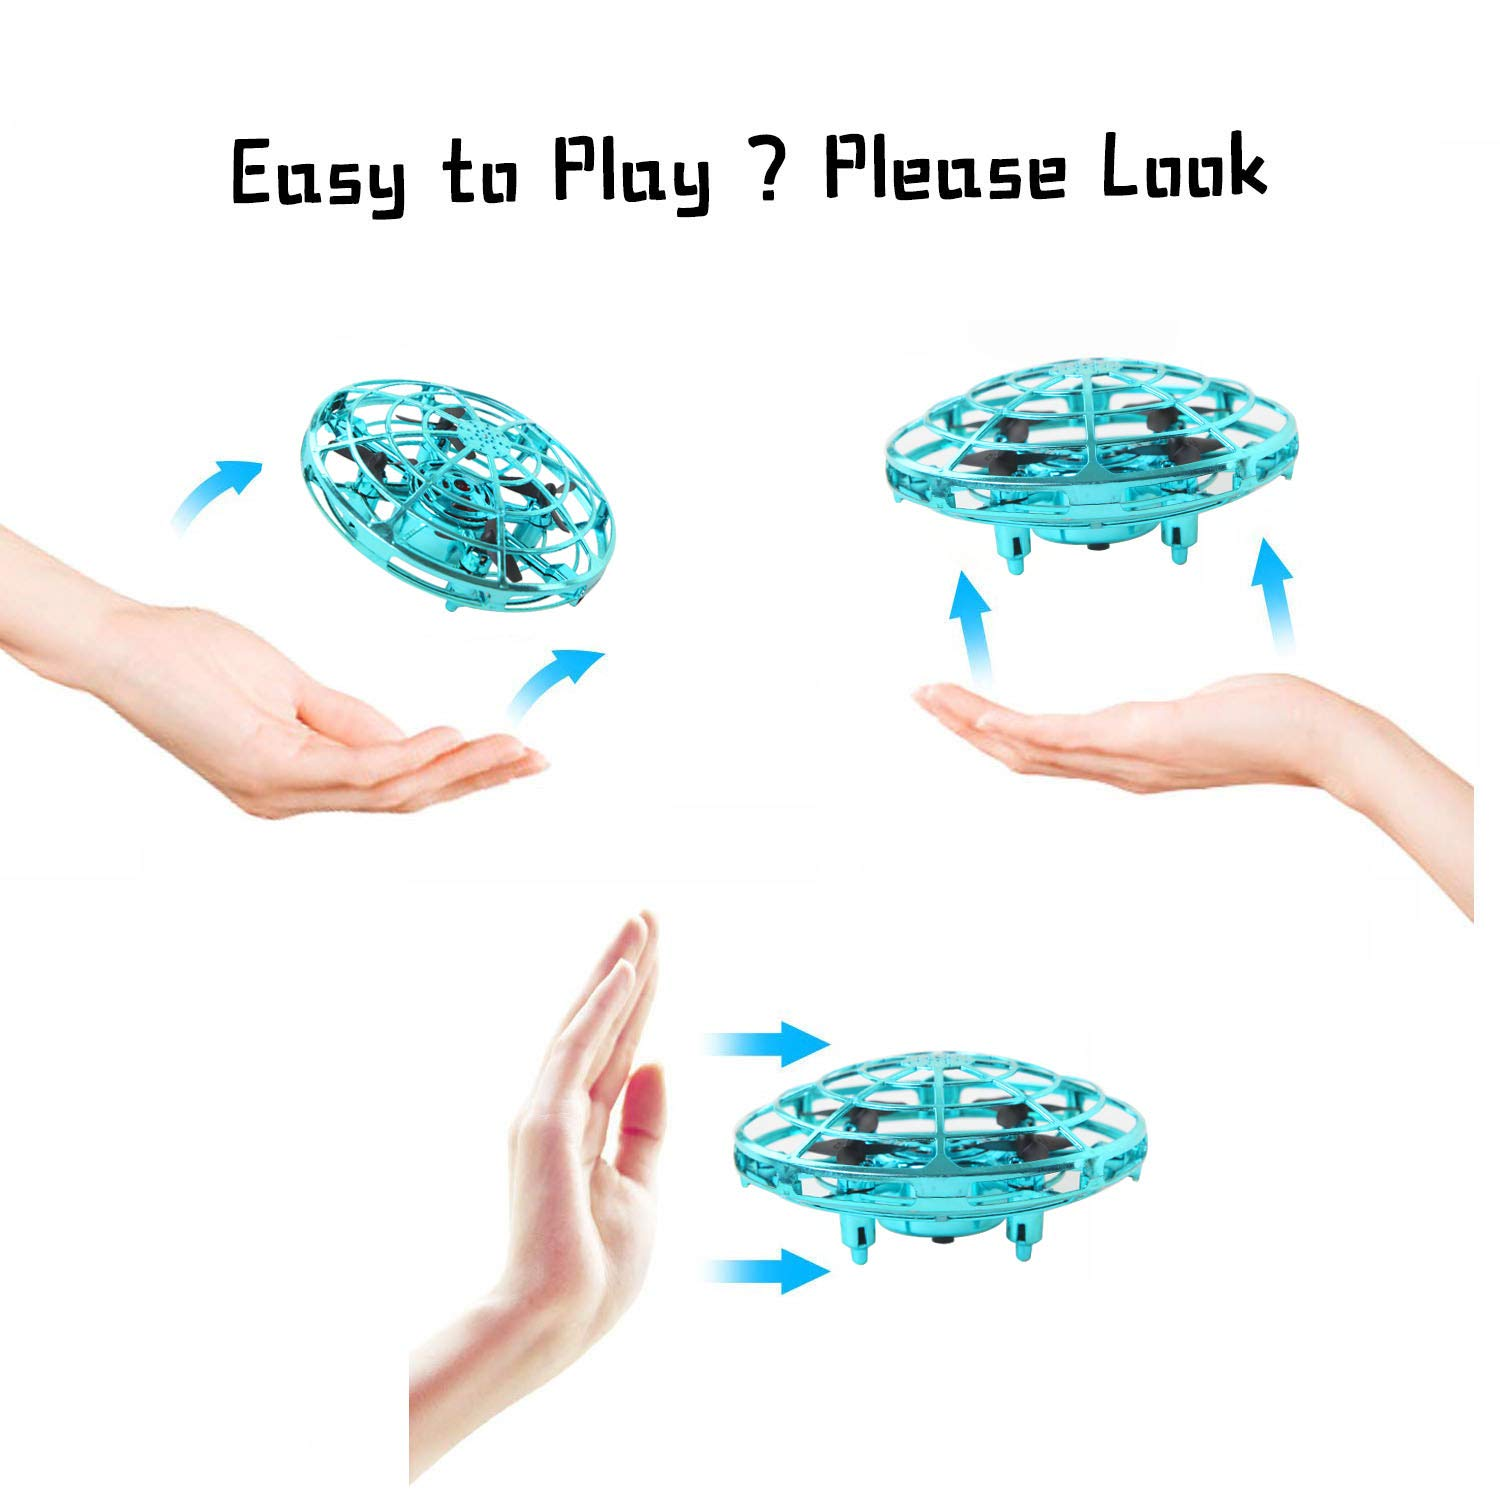 ZGYQGOO Hand Operated Drones for Kids 6 8 10 Year Old - Drone Toys for 5 6 7 8 9 10 Year Old Girls and Boys, Mini Easy Indoor Small Orb Flying Ball Indoor/Outdoor Teen Girl Gifts Blue by ZGYQGOO (Image #4)